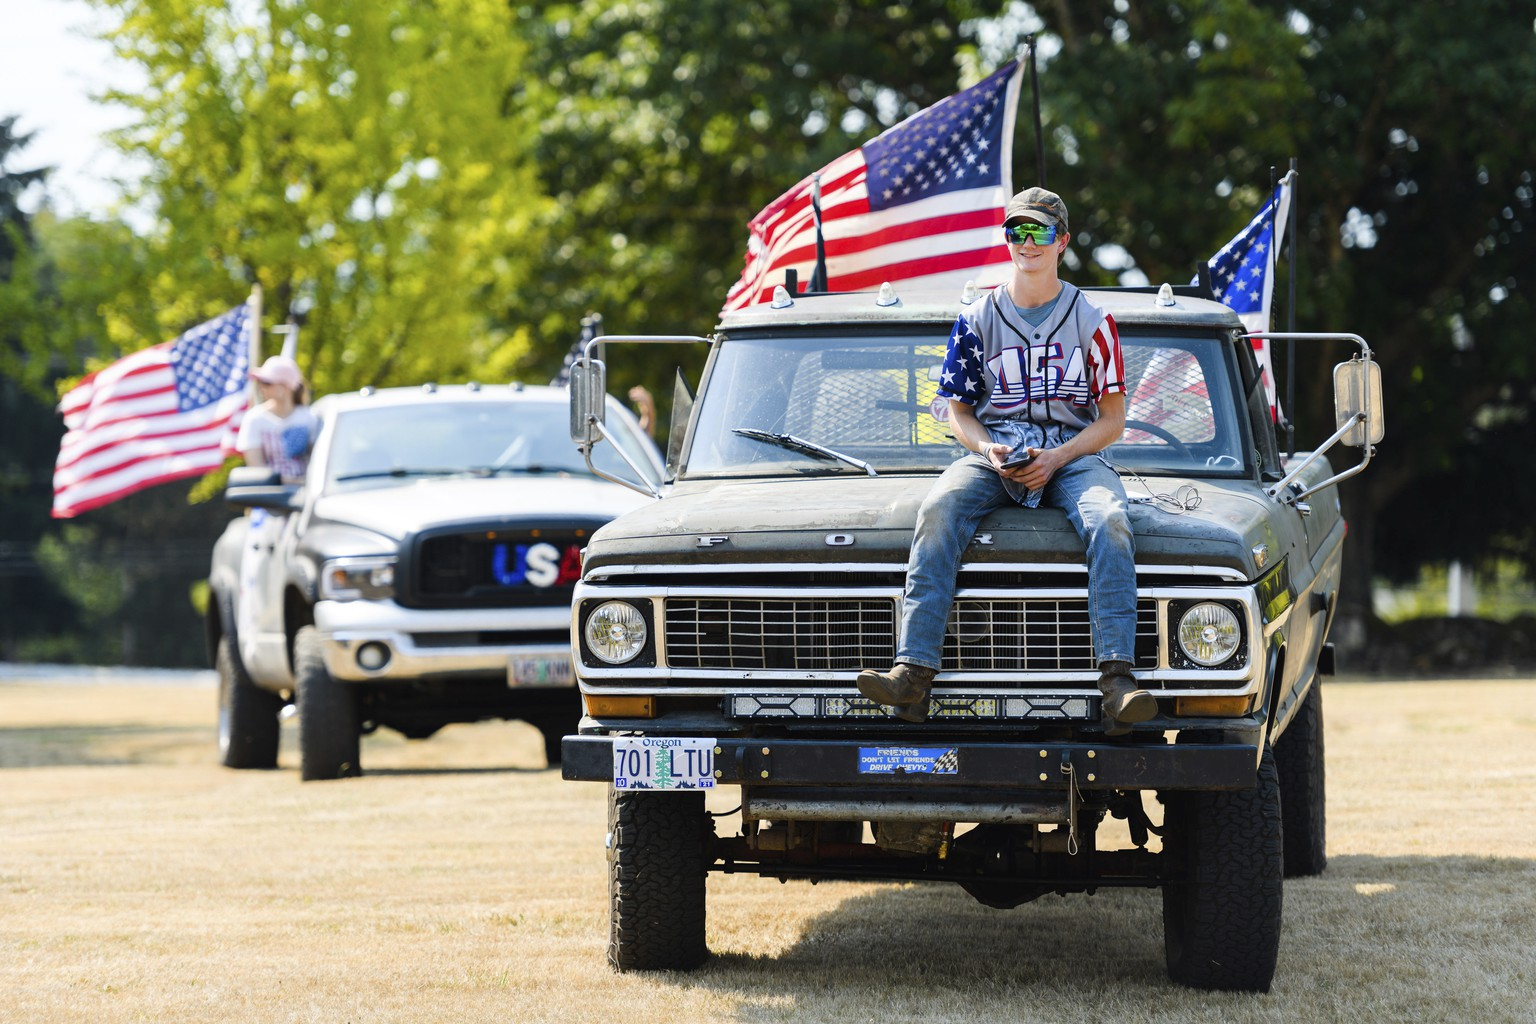 Riley Brumeister, 18, of Gresham, attends his first Trump rally atop the hood of his 1970 Ford F-250, at Clackamas Community College in Oregon City, Ore., Monday, Sept. 7, 2020. (AP Photo/Michael Arellano)